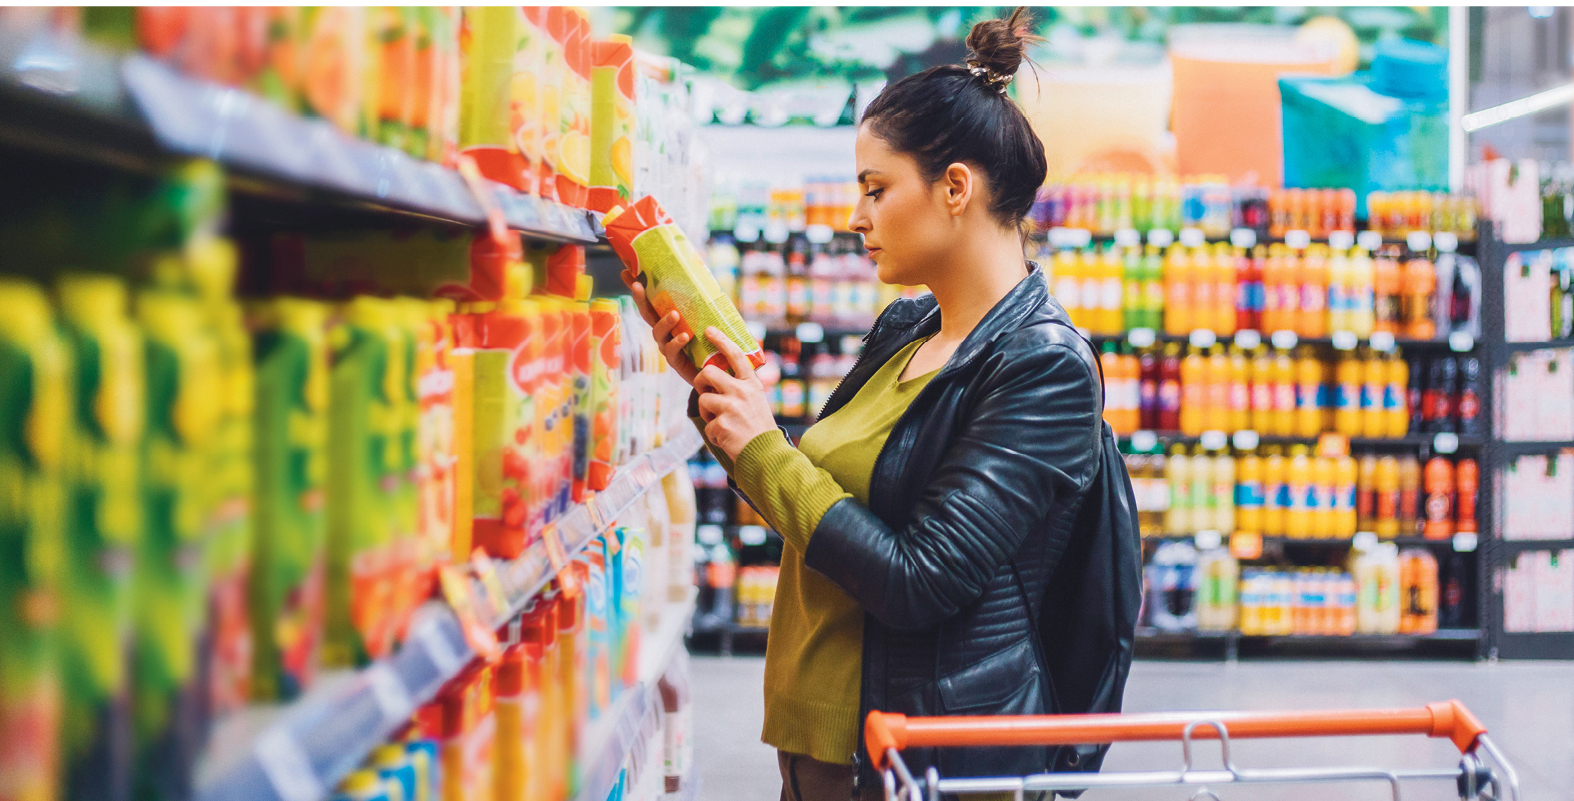 On World Food Day, the World Heart Federation calls on governments to implement mandatory front-of-pack food labels